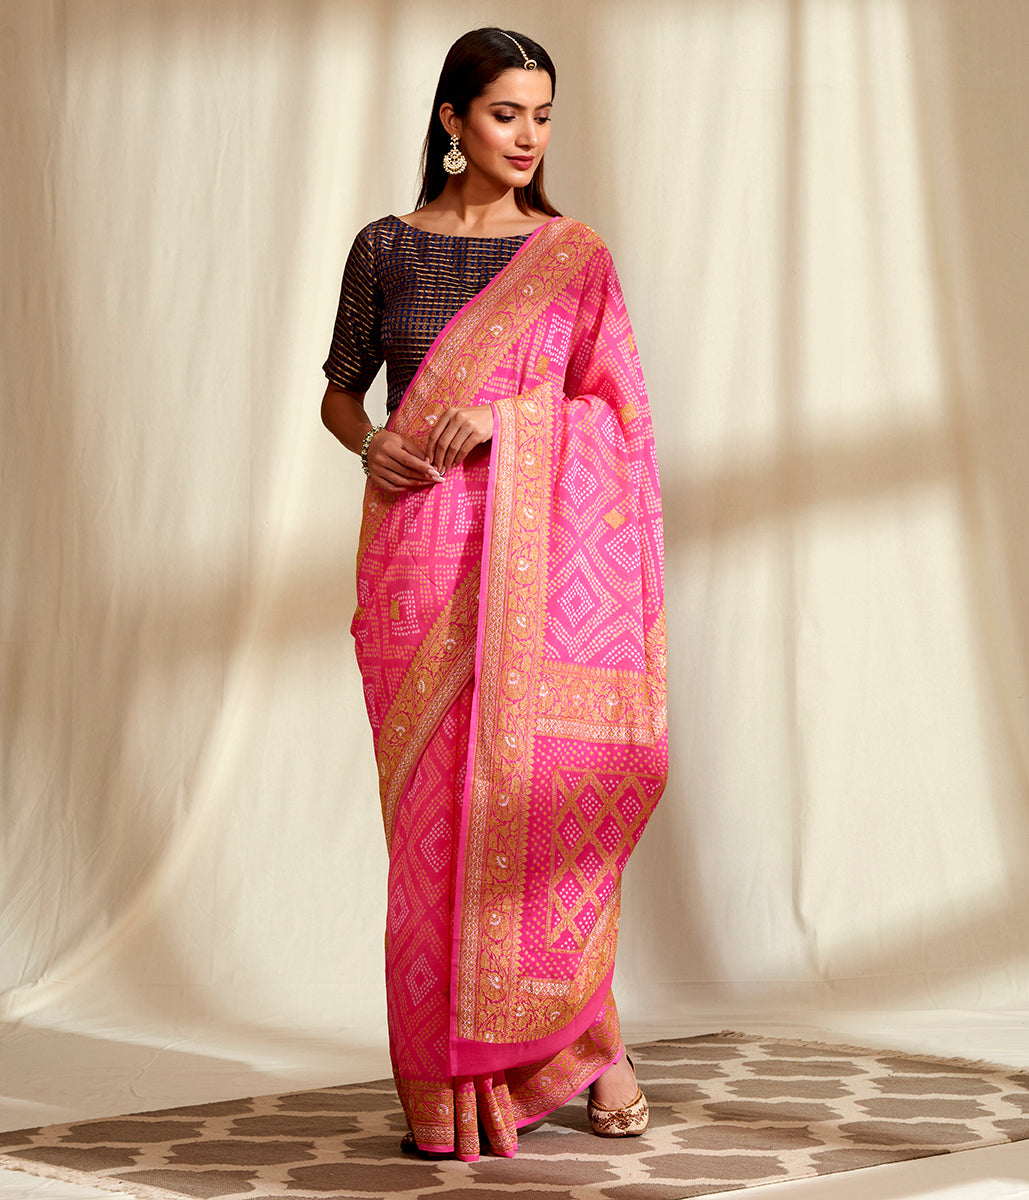 Handwoven Banarasi Bandhej Saree in Pink with Gold Zari Kadhwa Weave